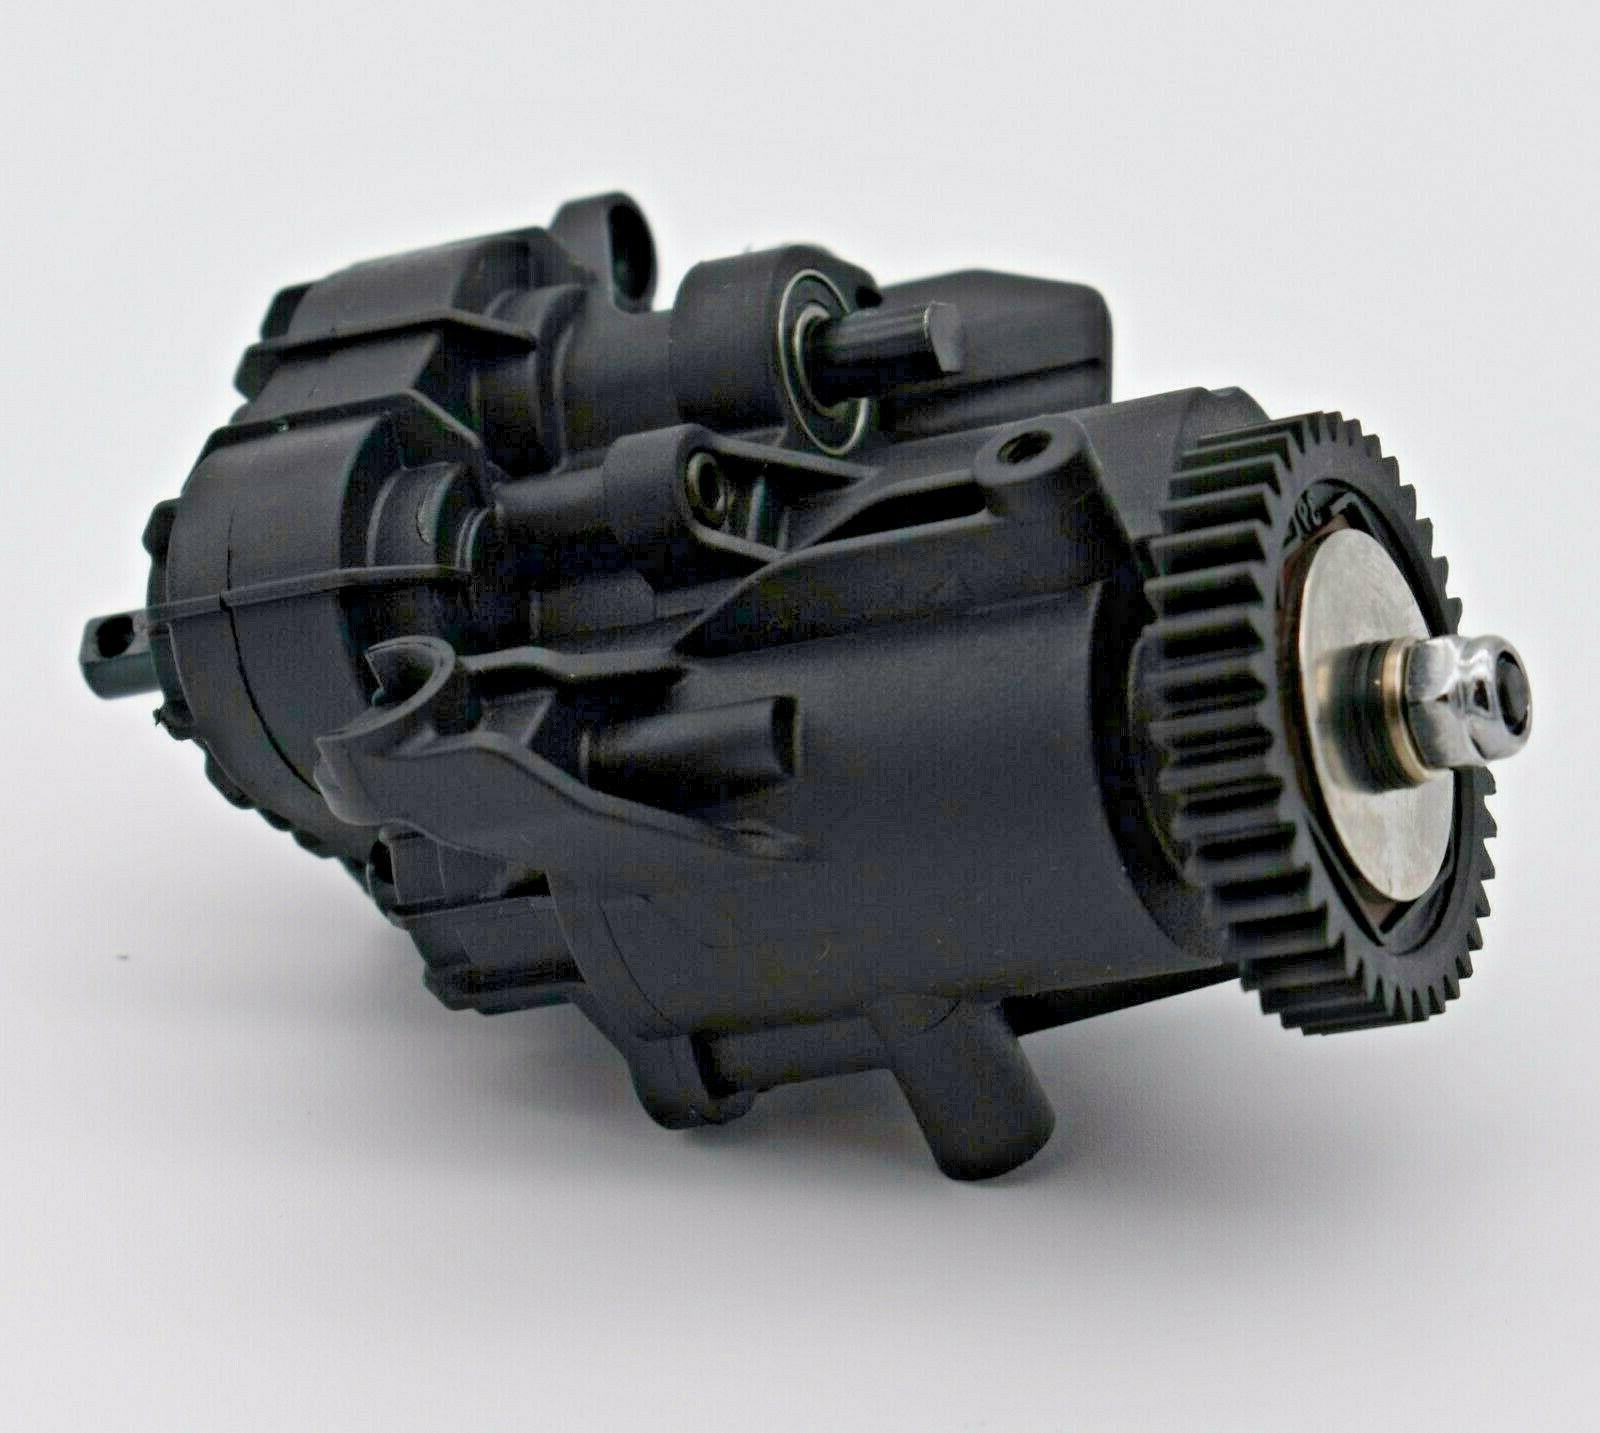 new trx 4 sport transmission with spur